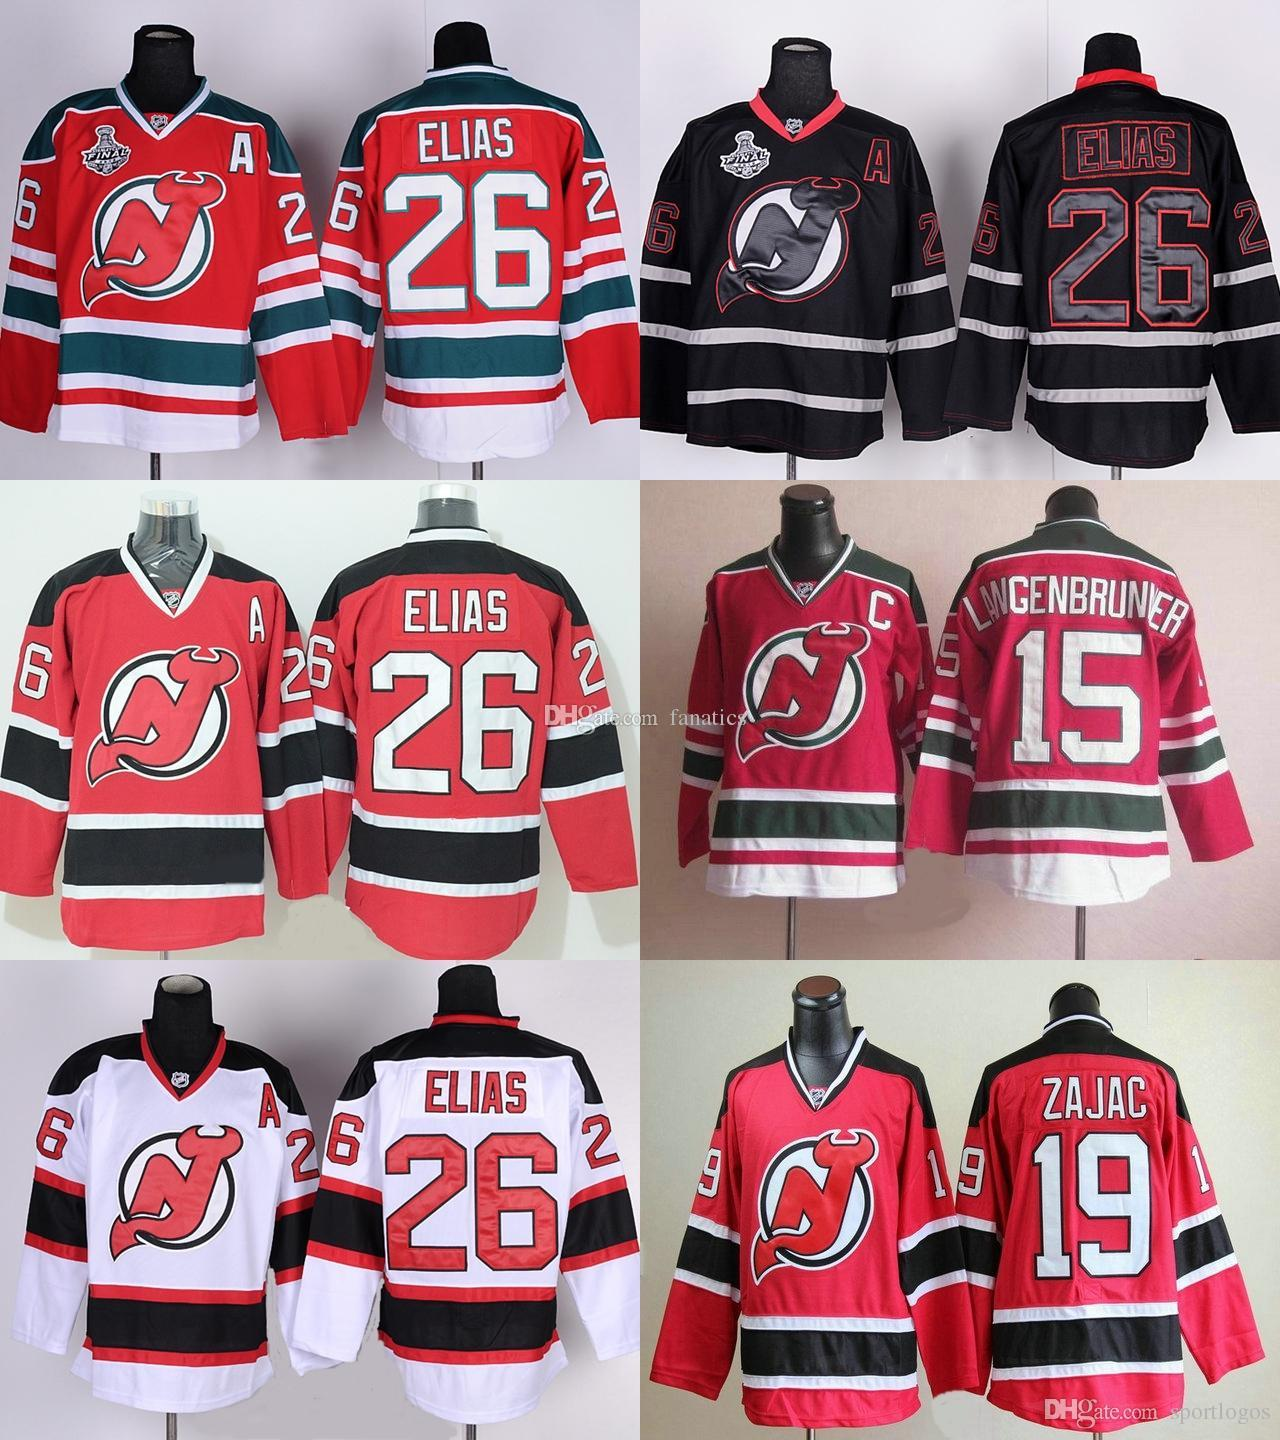 ... 2017 MenS New Jersey Devils 26 Patrik Elias 19 Travis Zajac 15  Langenbrunner Red White Black Authentic New Jersey Devils No.19 ... 8d5eee43a